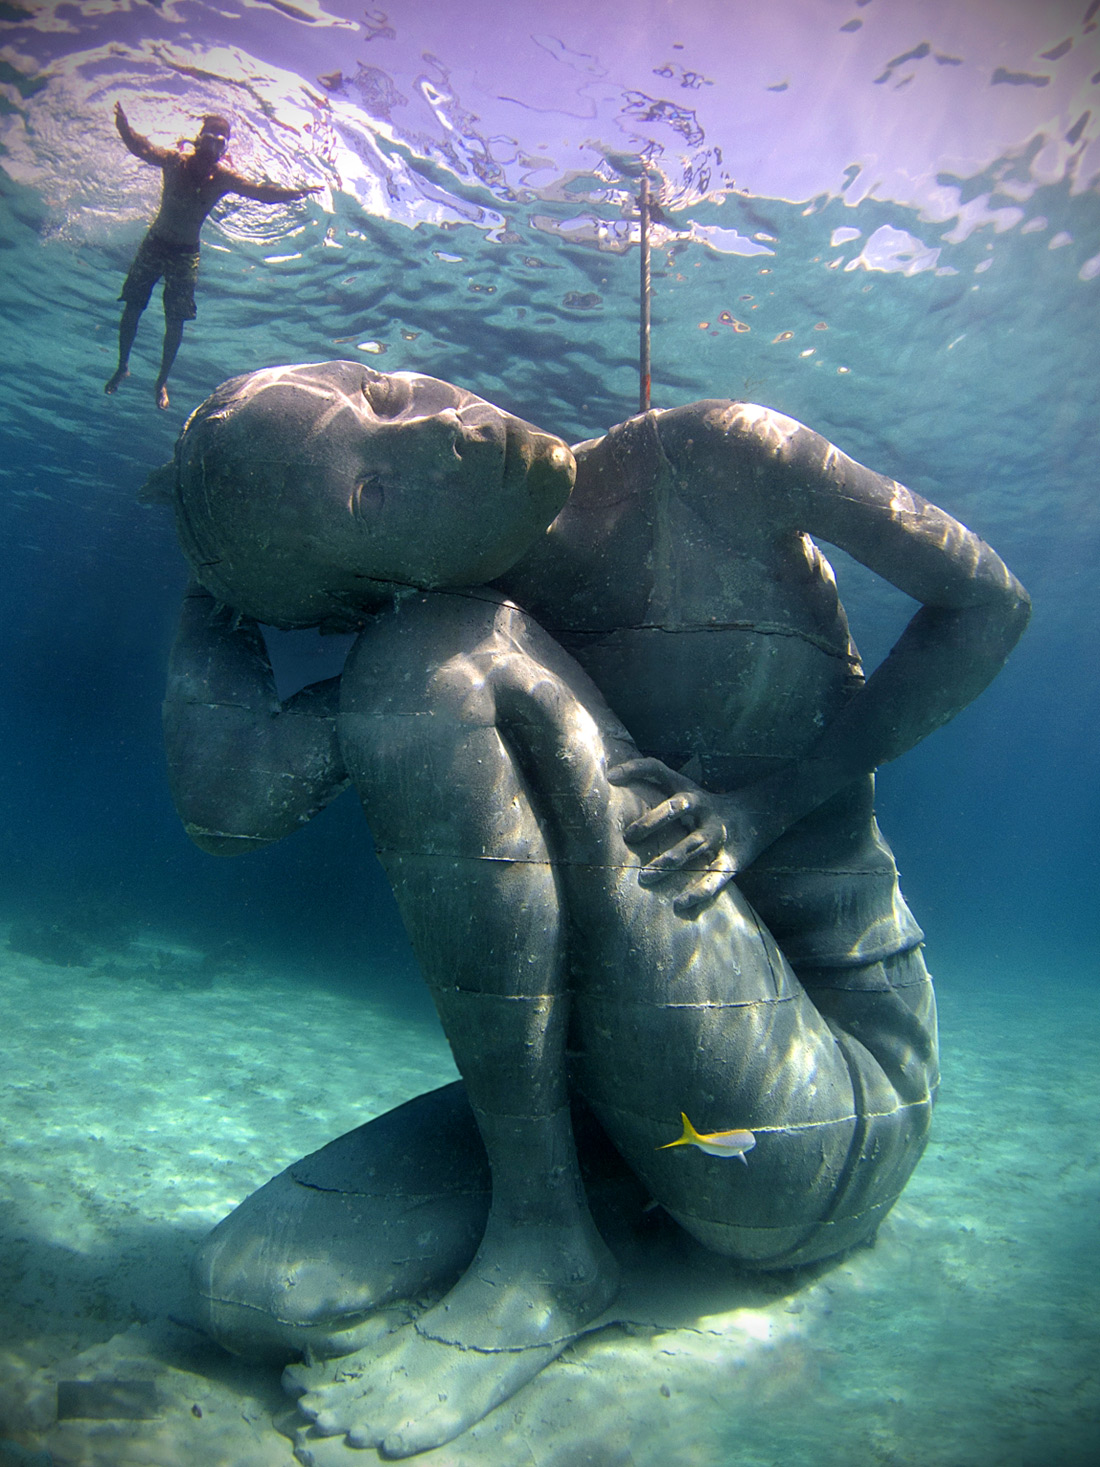 Ocean Atlas: A Massive Submerged Girl Carries the Weight of the Ocean sculpture ocean environment